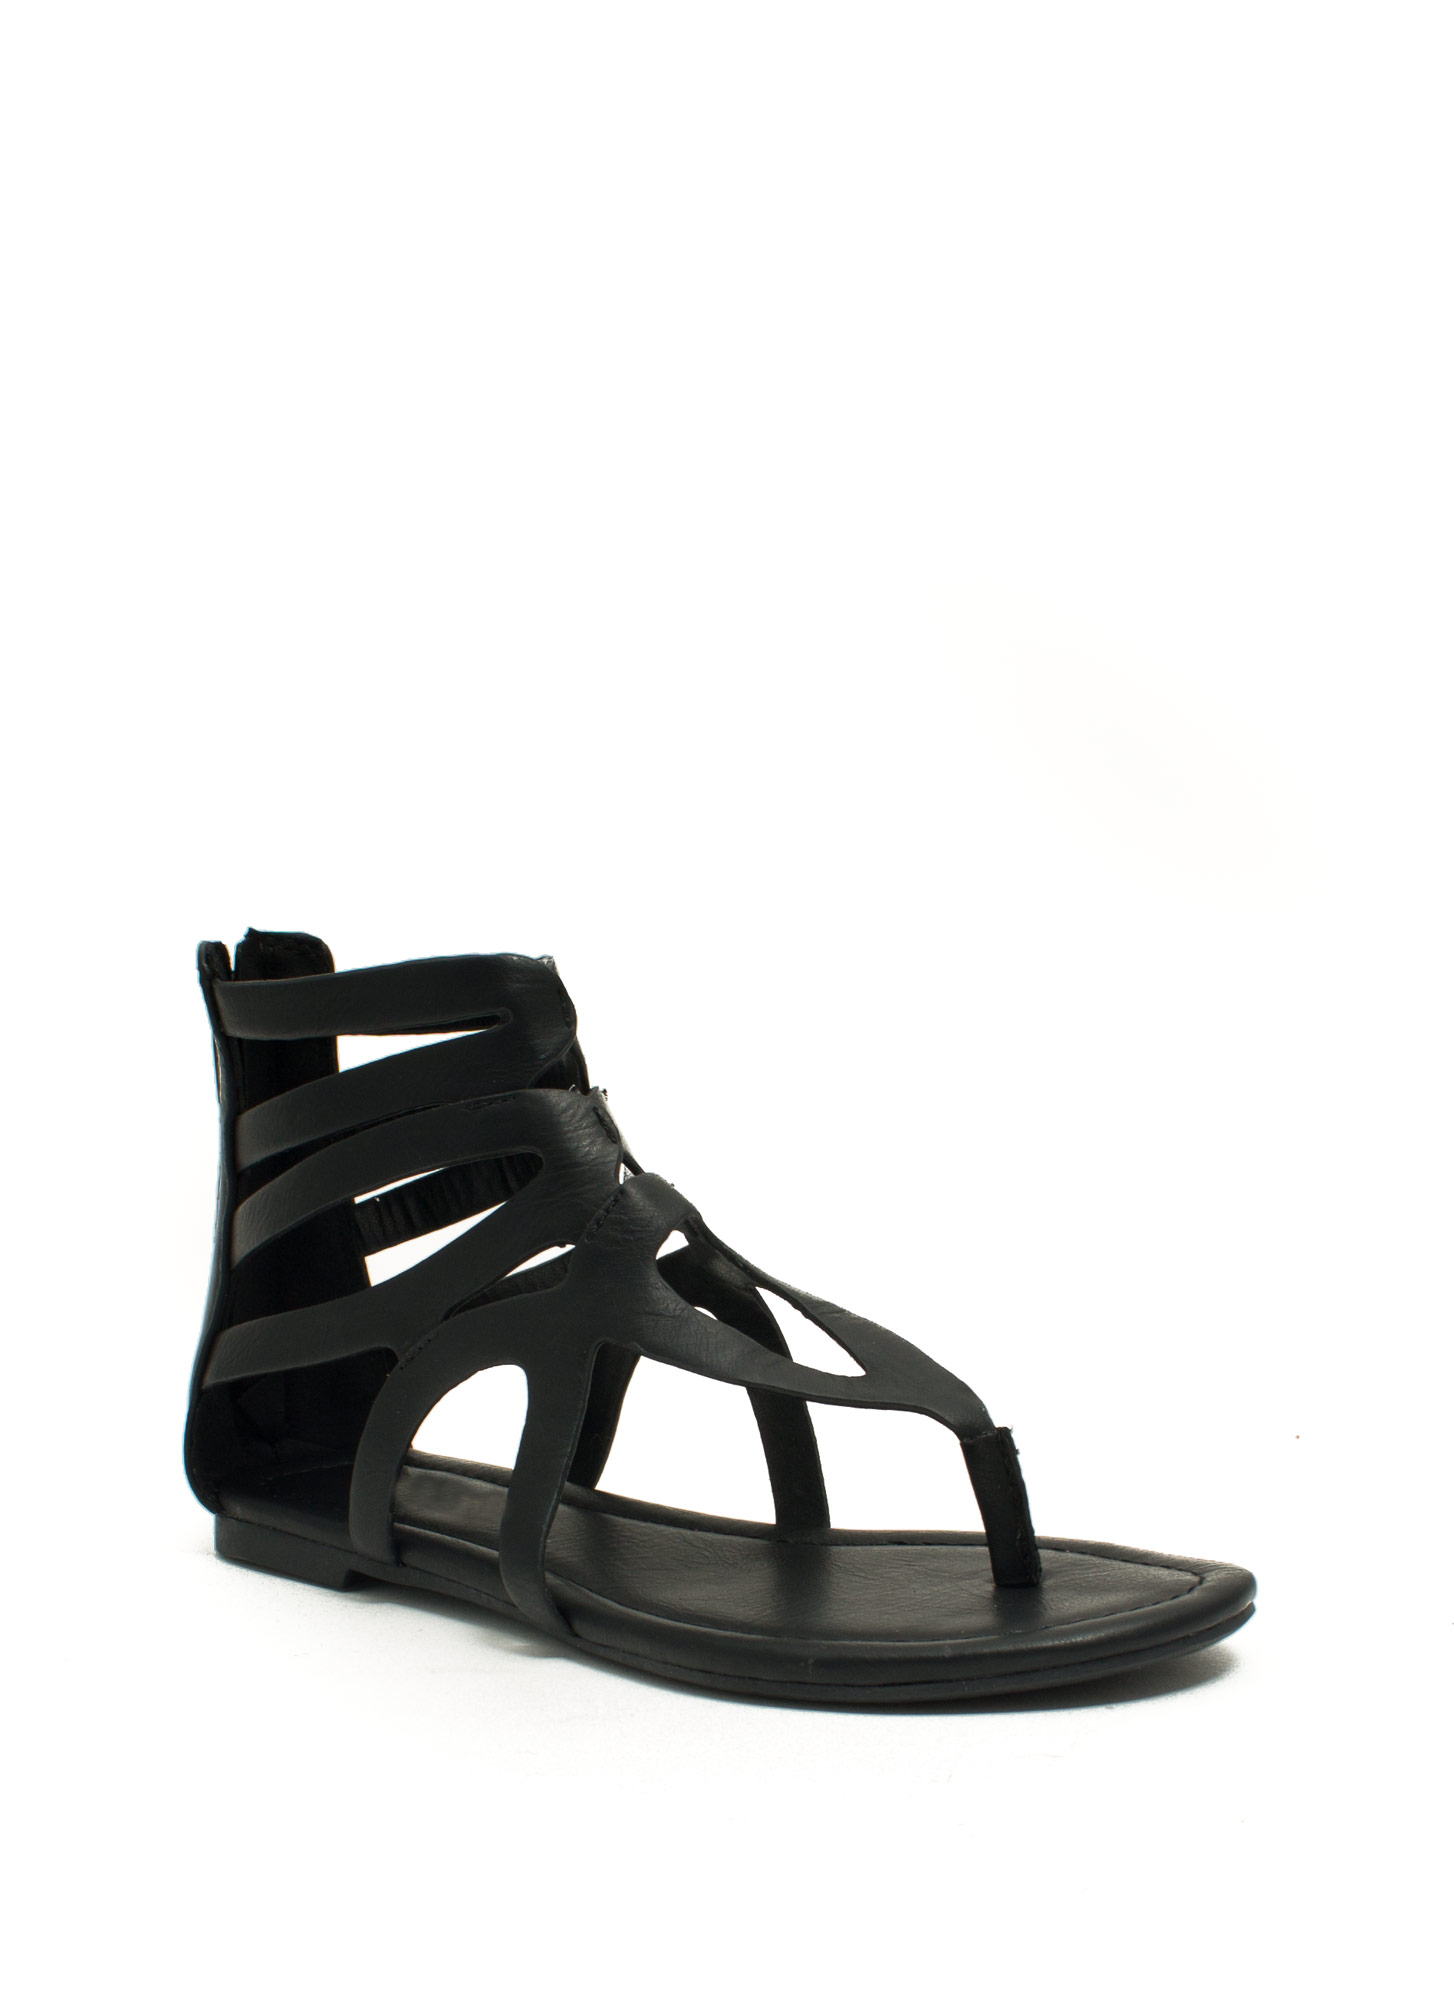 Tear It Up Gladiator Sandals BLACK